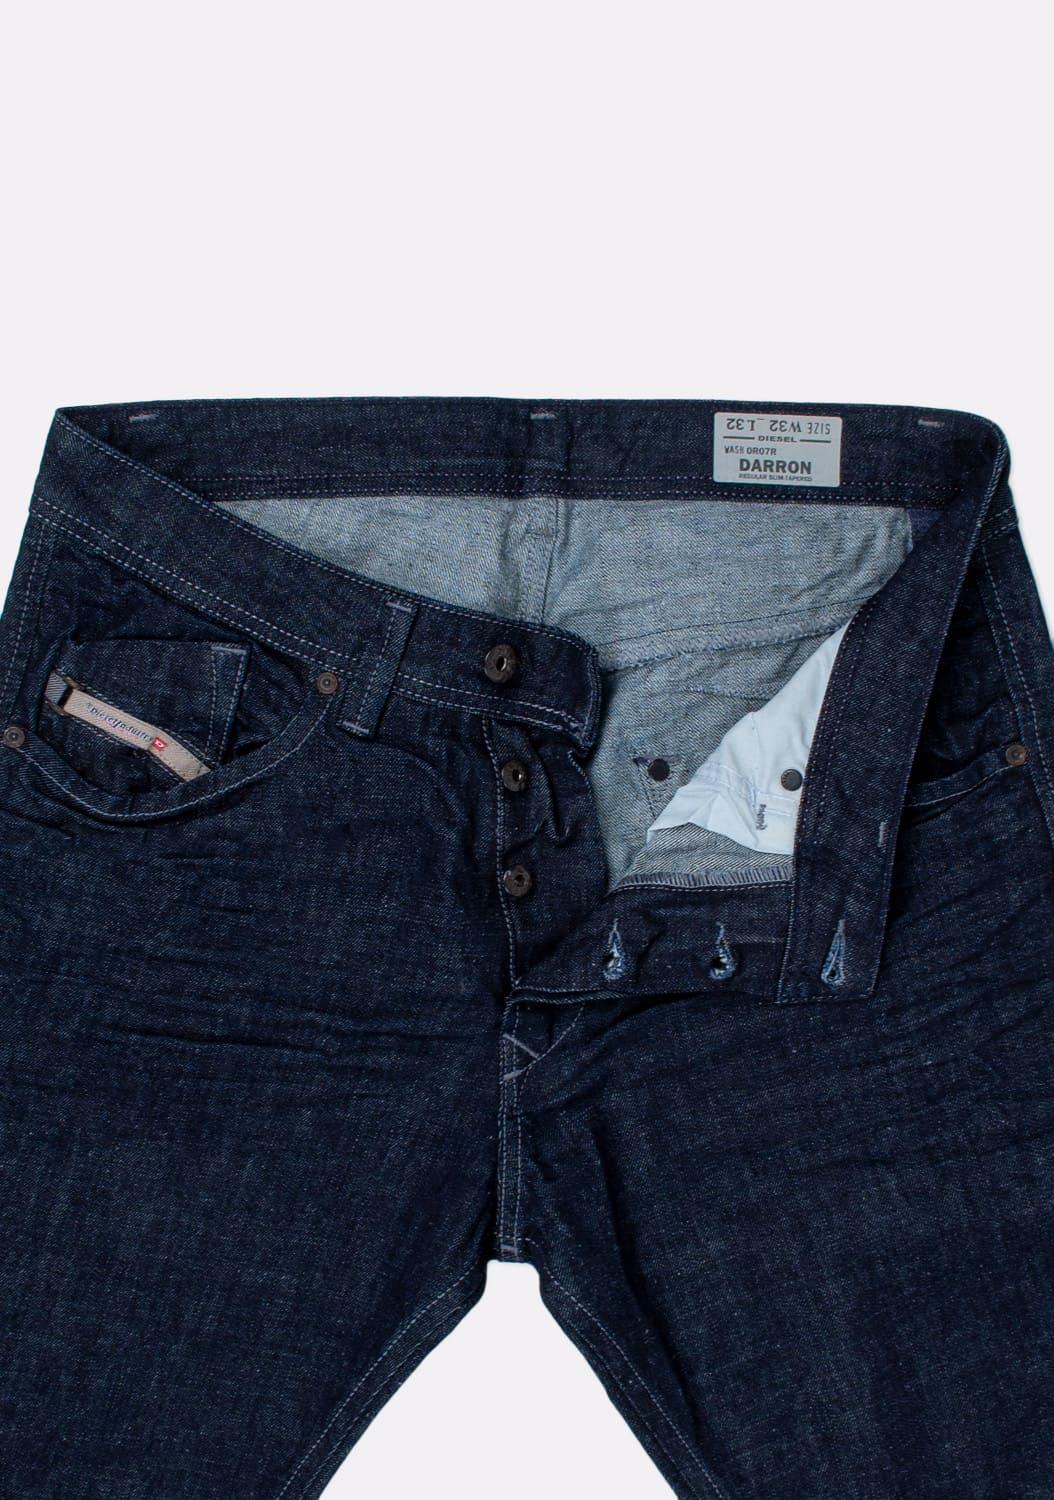 Diesel-Darron-0R07R-Regular-Slim-tapered-dydis-32 (3)